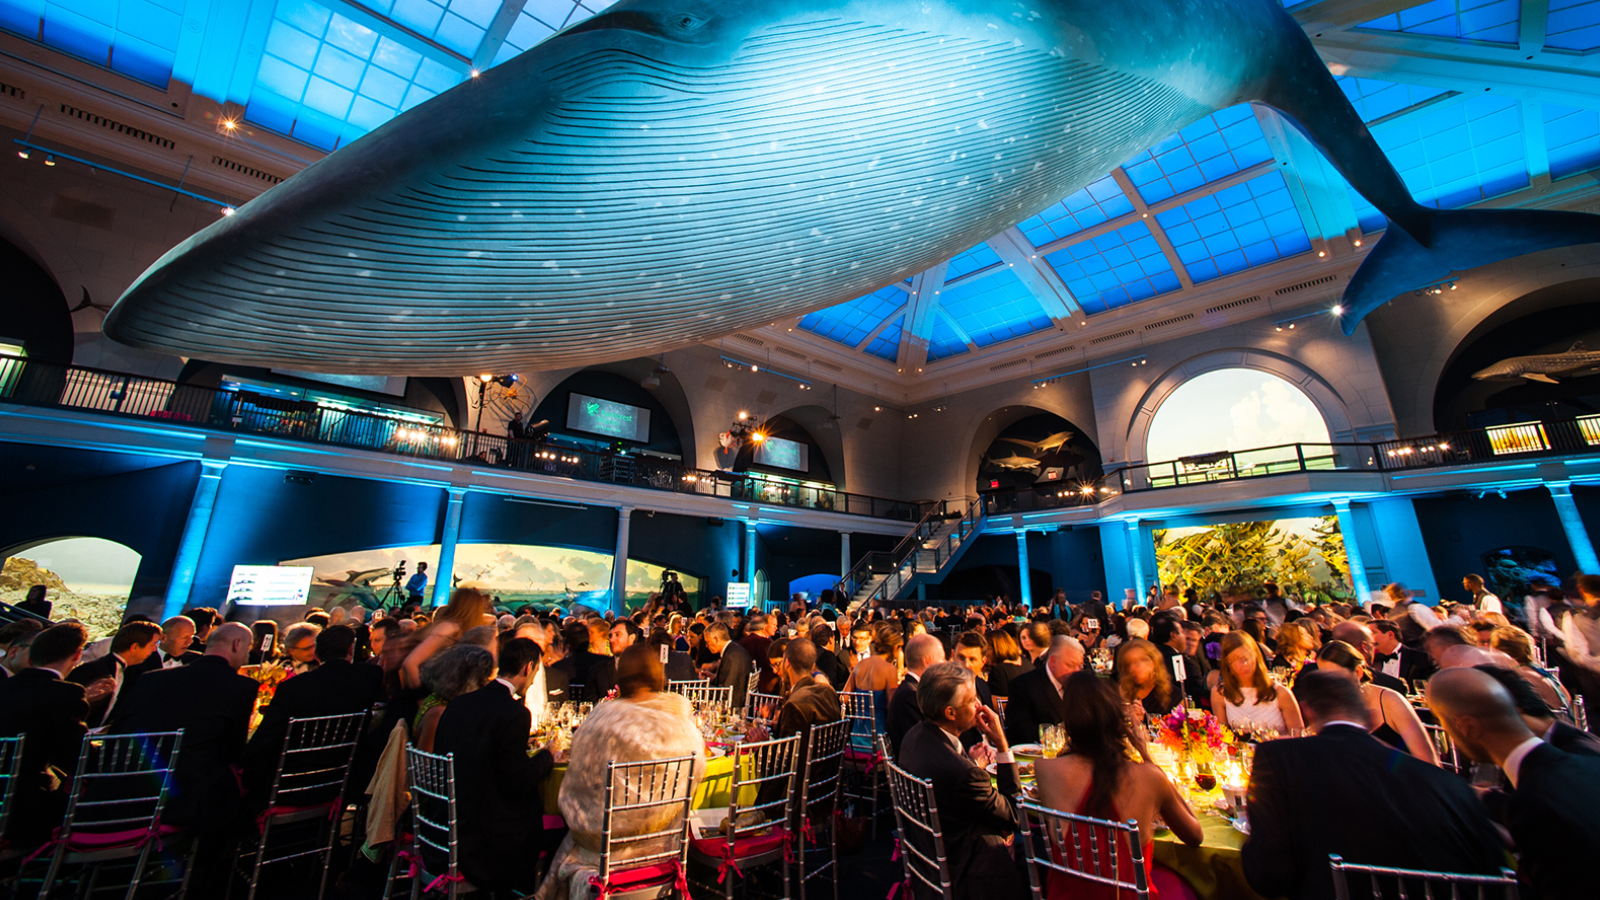 Photo of Rainforest Alliance Gala, held at American Museum of Natural History in New York